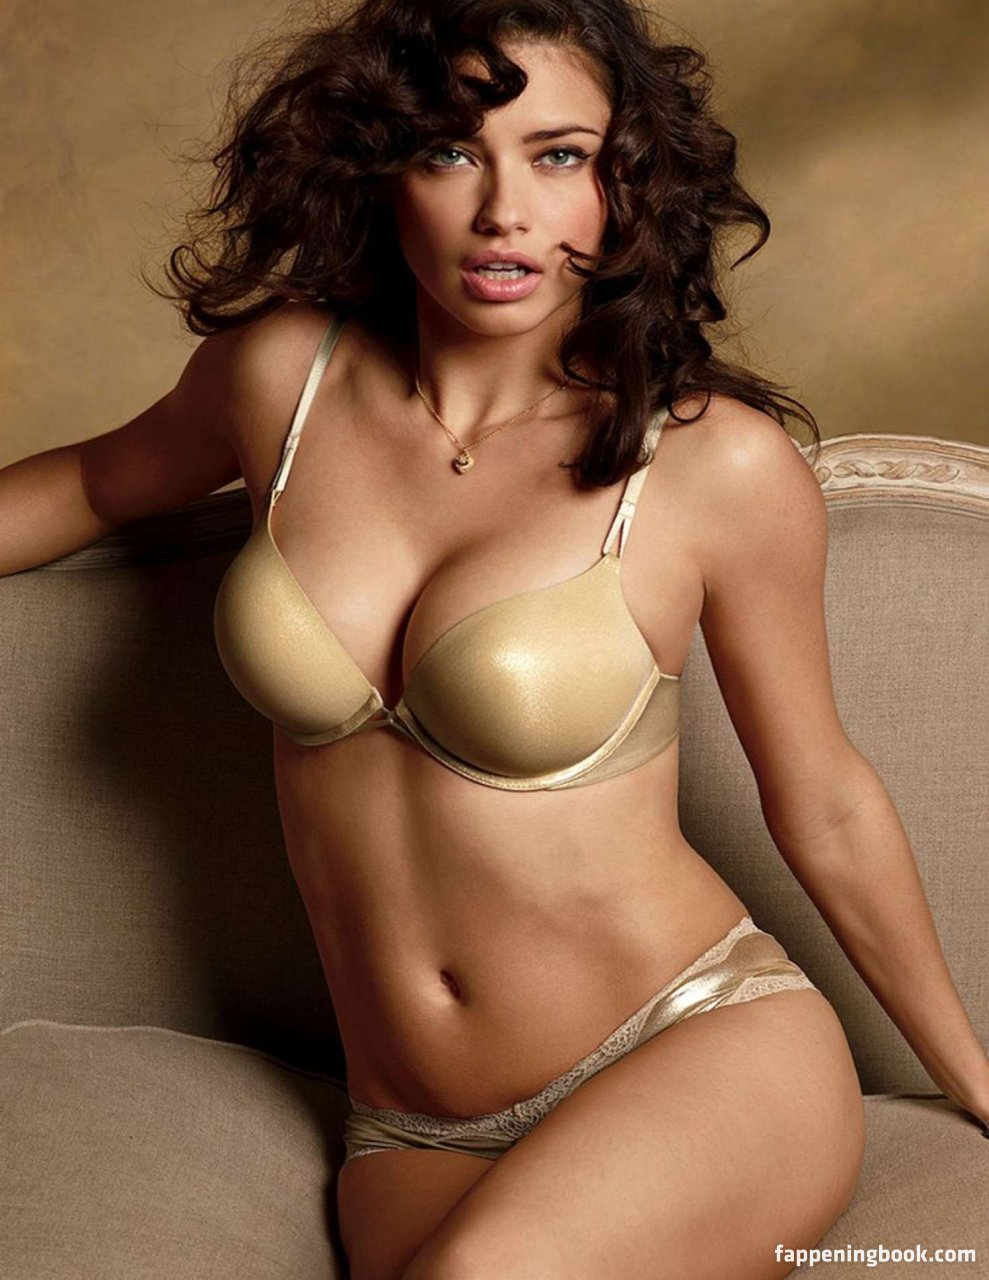 Andrea Lima Nude adriana lima nude, sexy, the fappening, uncensored - photo